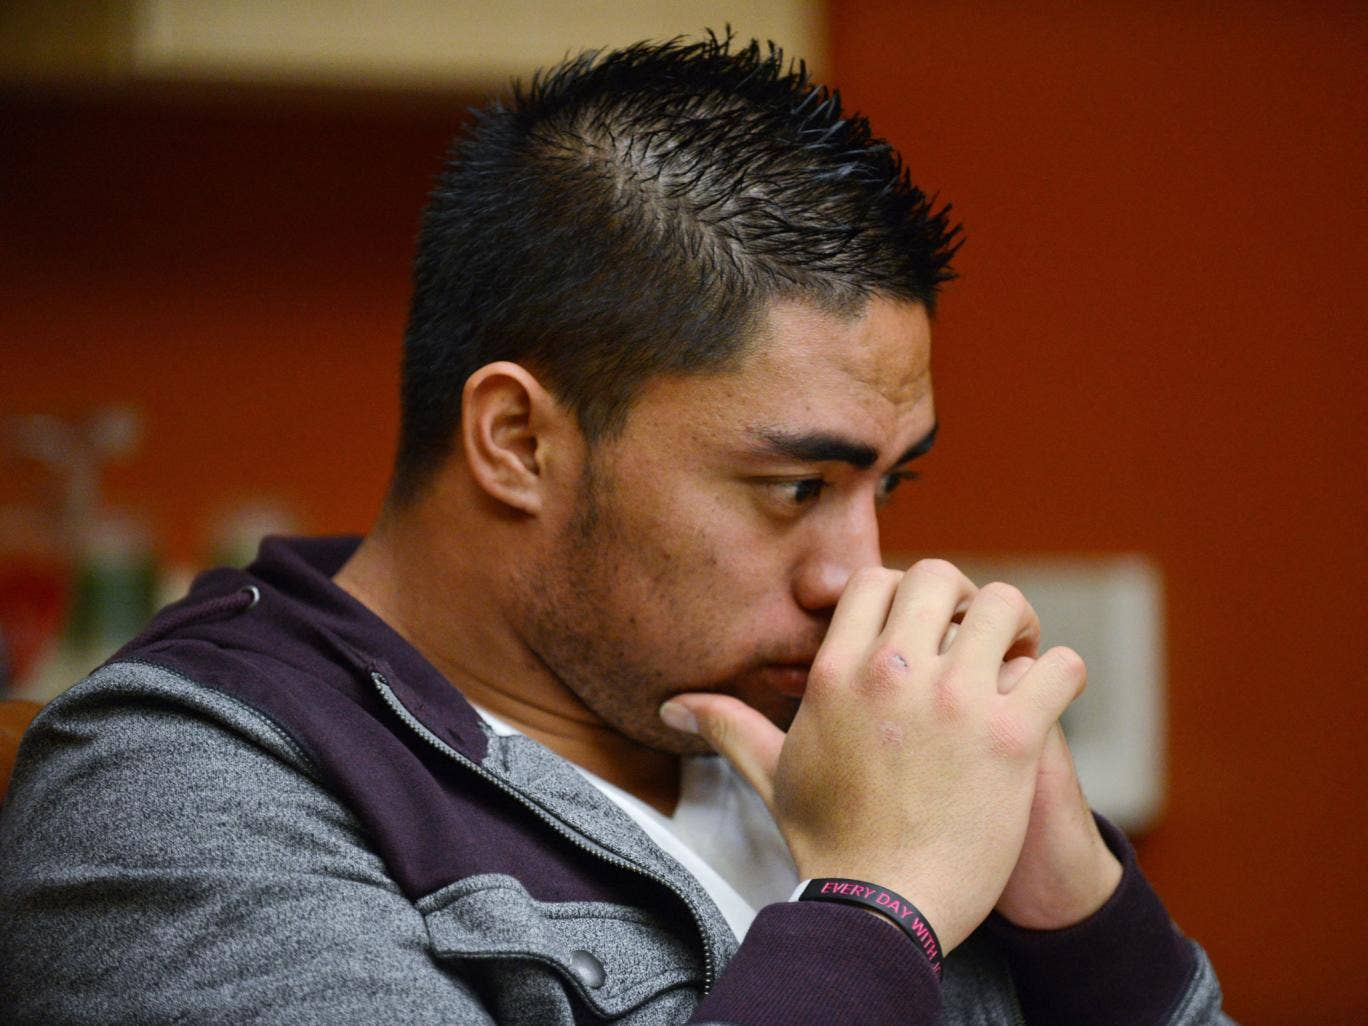 Missing person: The Manti Te'o headlines went from hero to hoax after his heart-warming tale turned into a whodunit